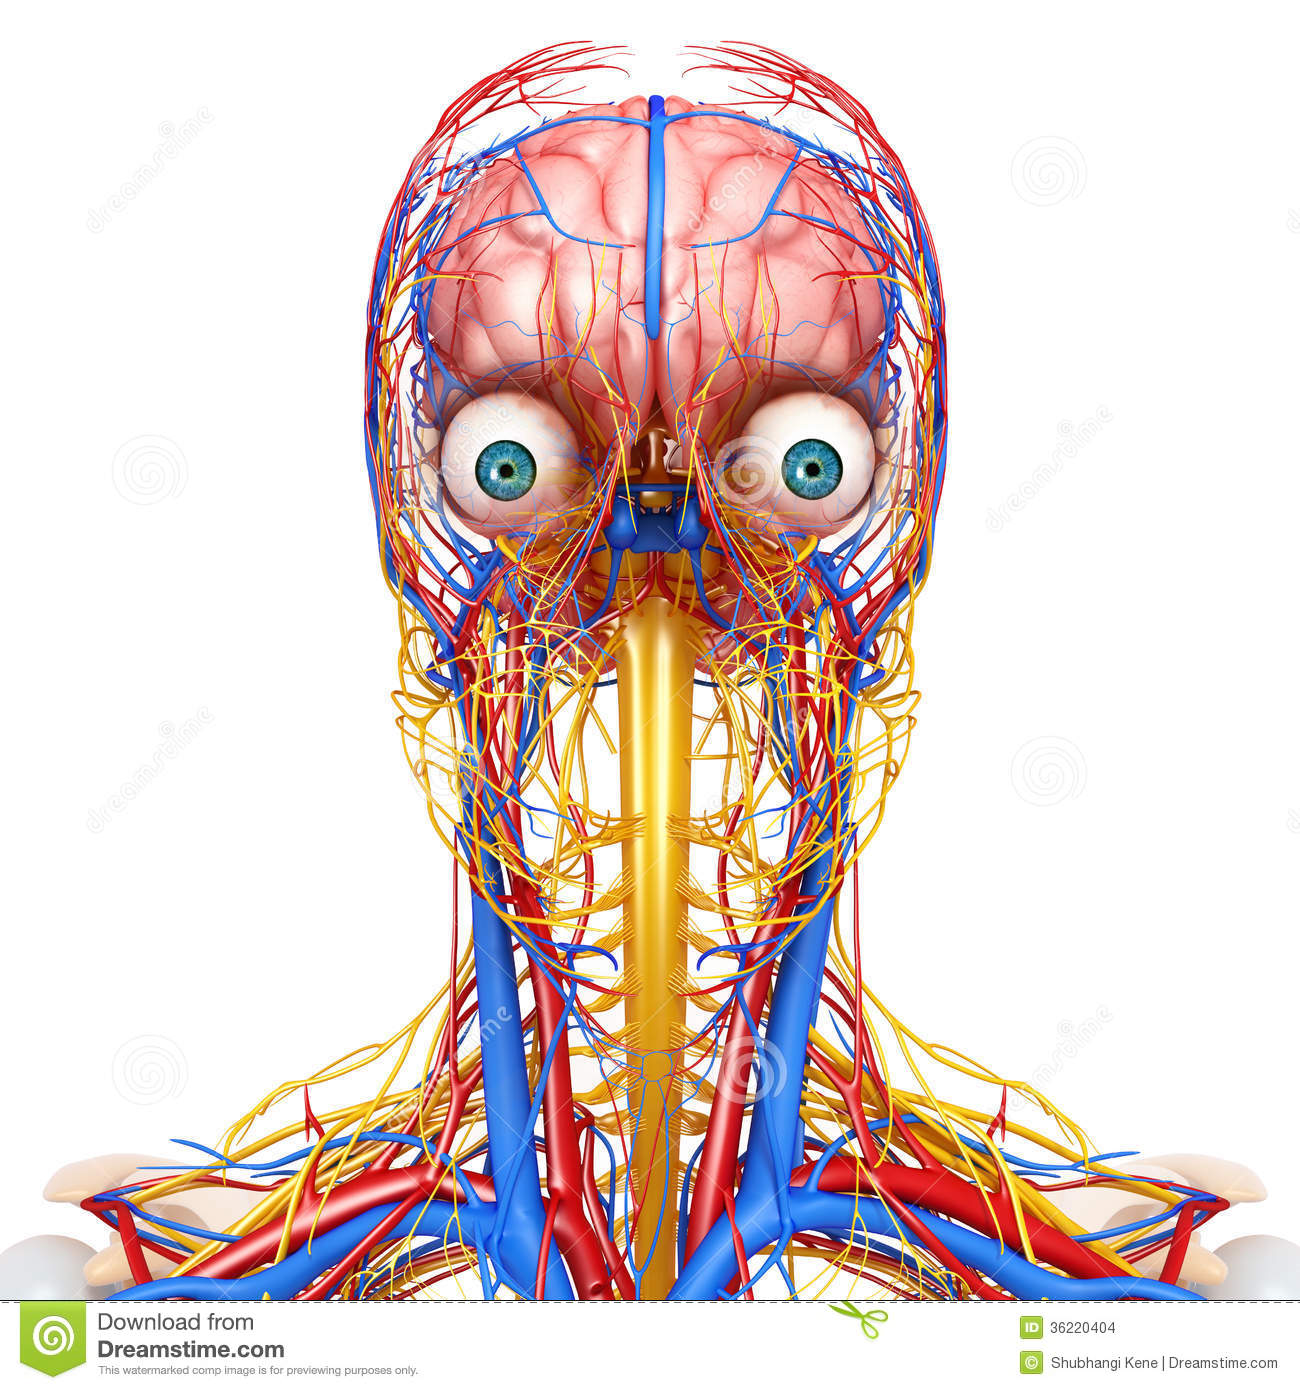 hight resolution of 3d art illustration of circulatory and nervous system of head